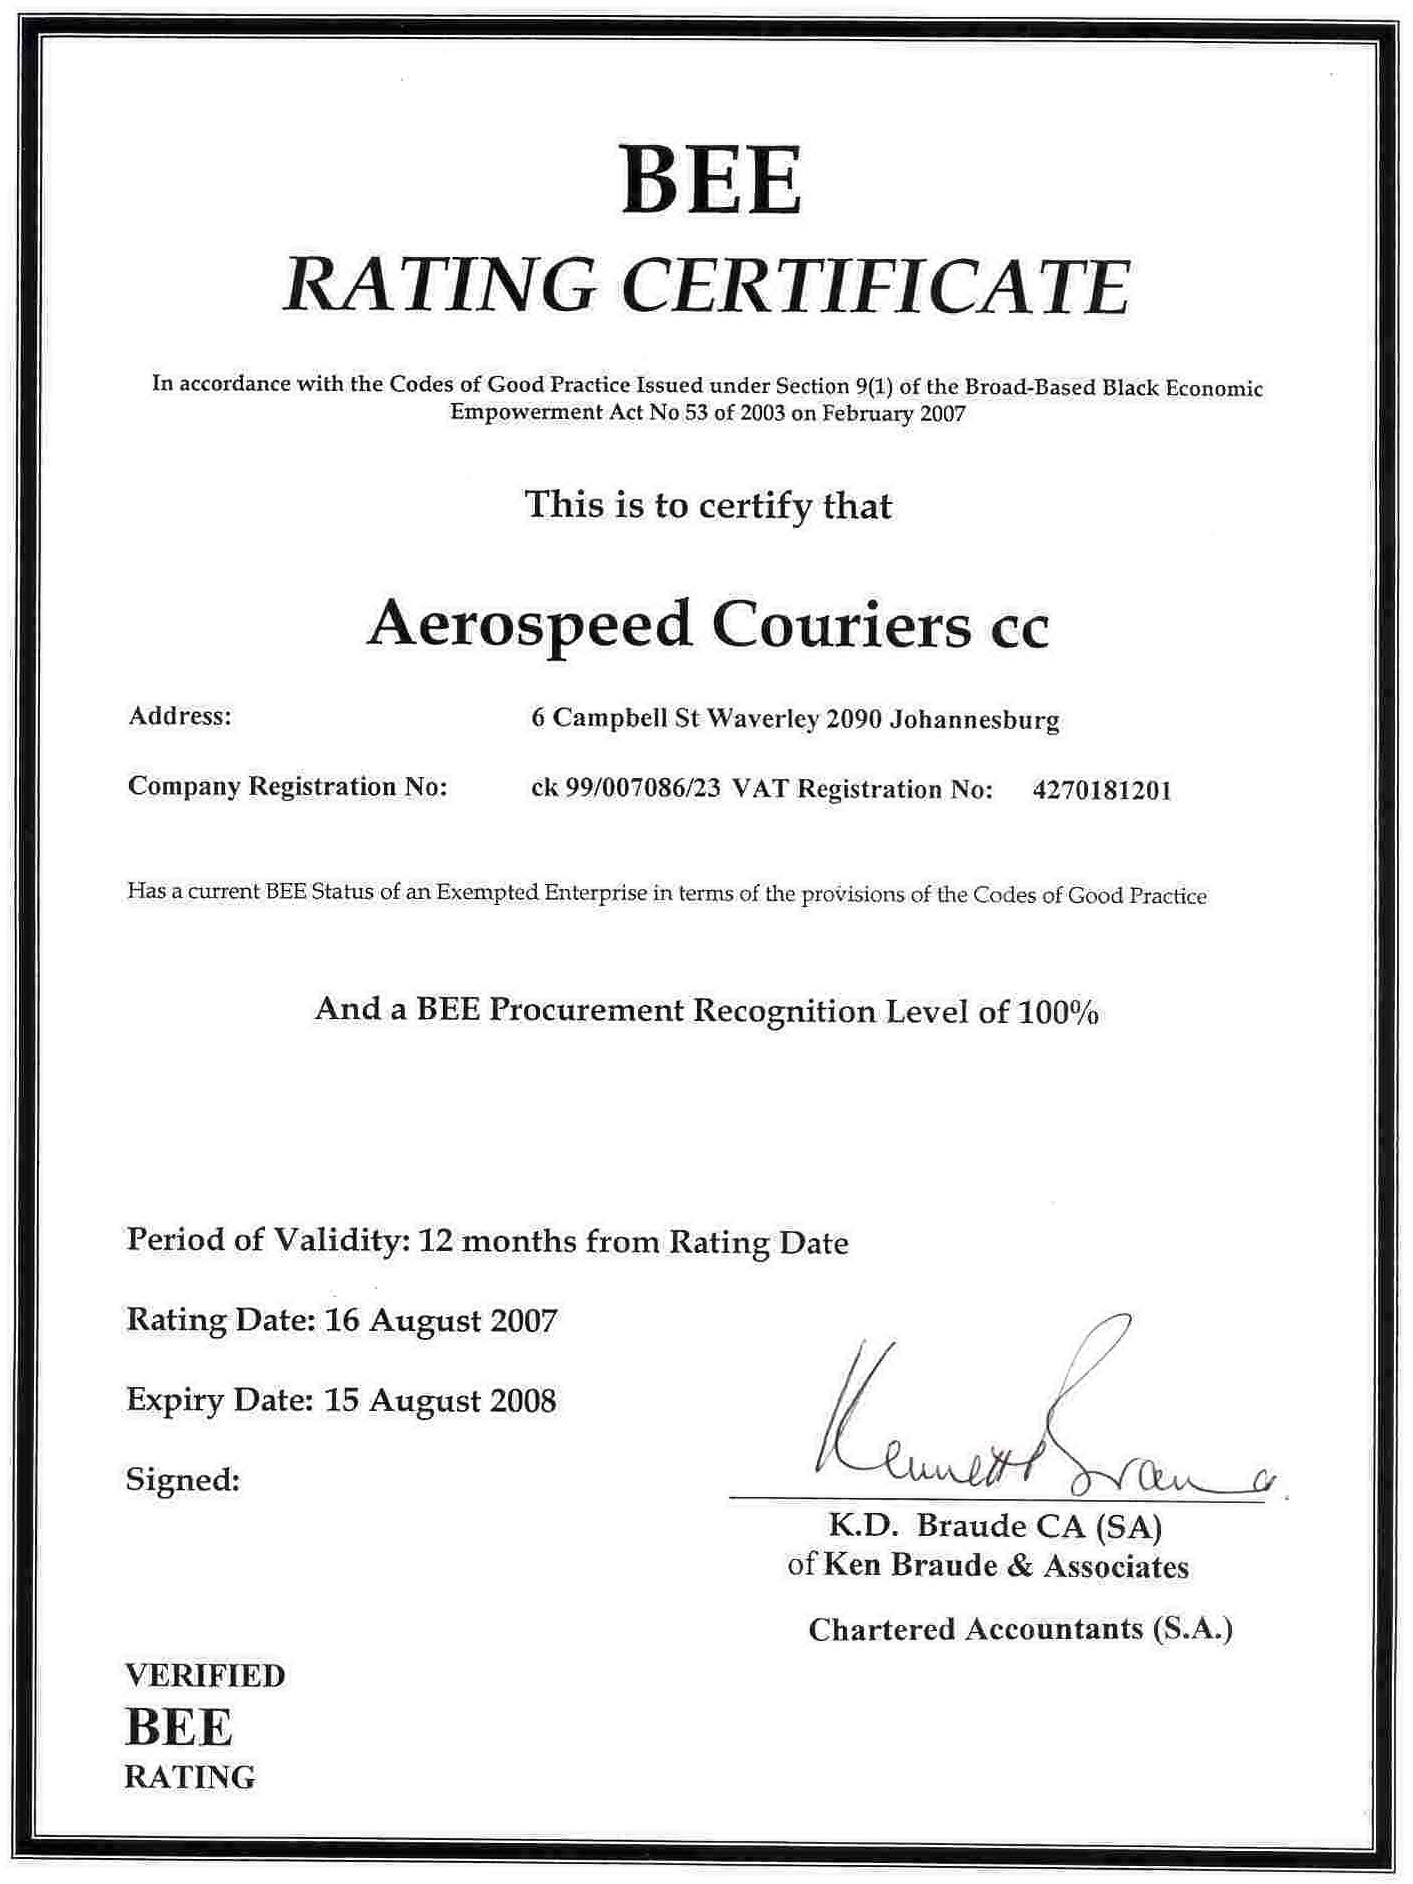 share certificate template companies house - bee certificate aerospeed couriers